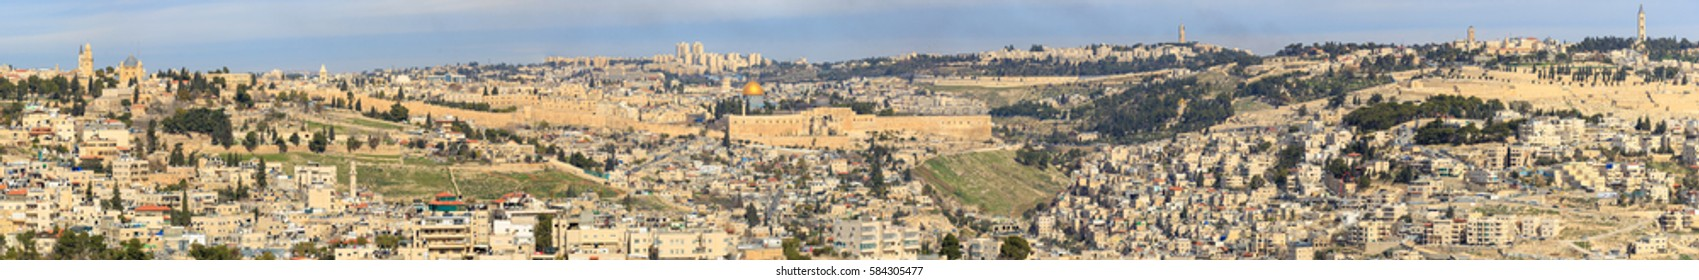 Panorama of old city Jerusalem, Israel from southern side